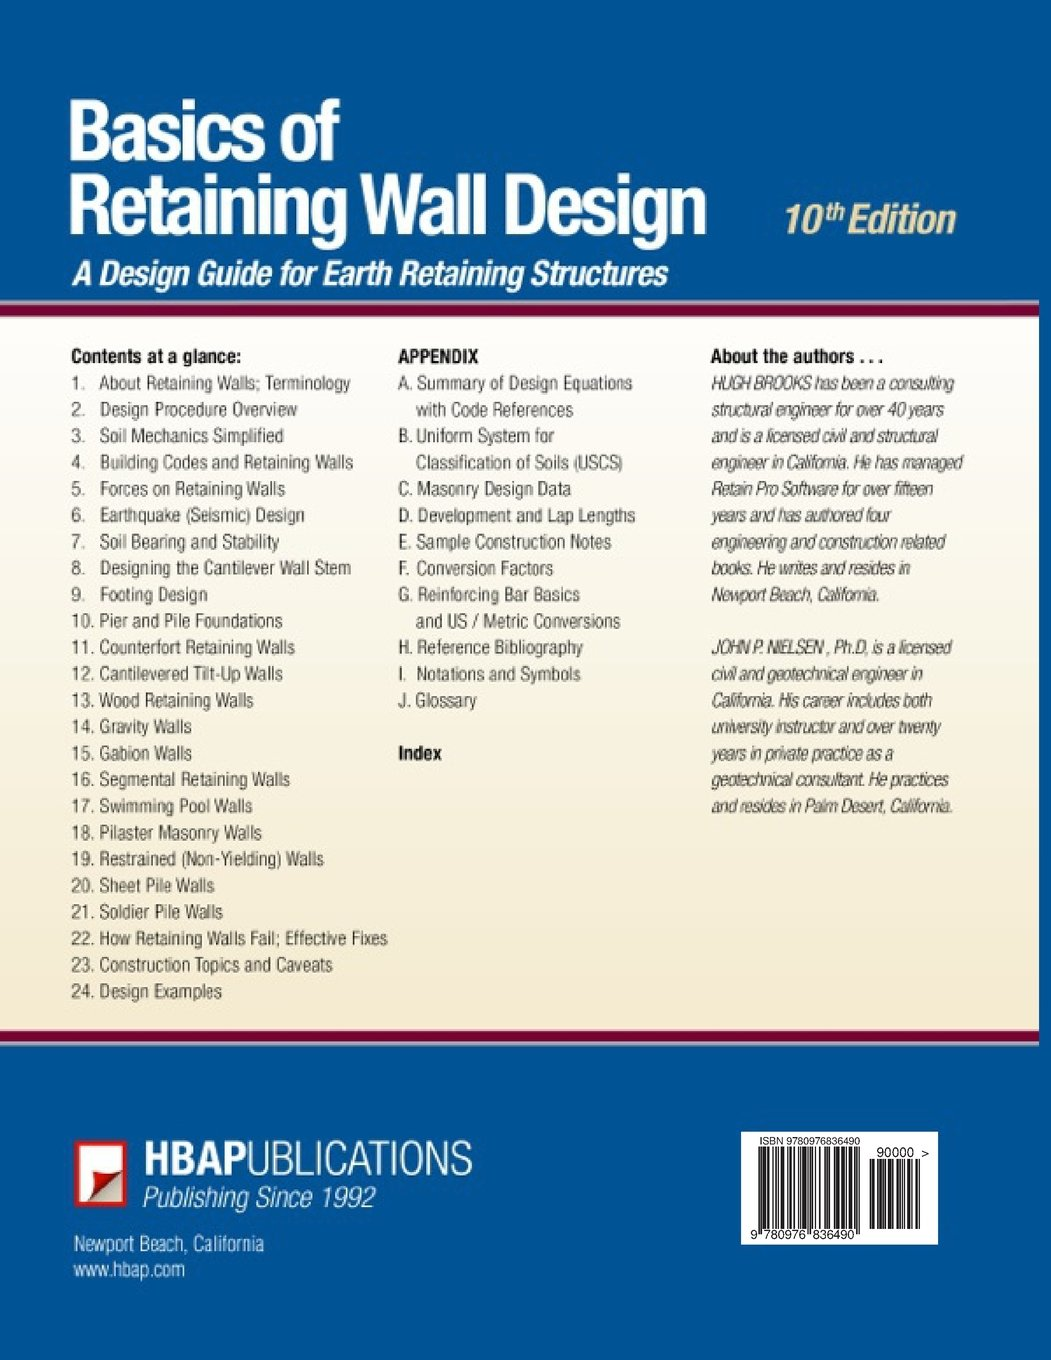 Basics of Retaining Wall Design 10th Edition Mr Hugh Brooks Mr